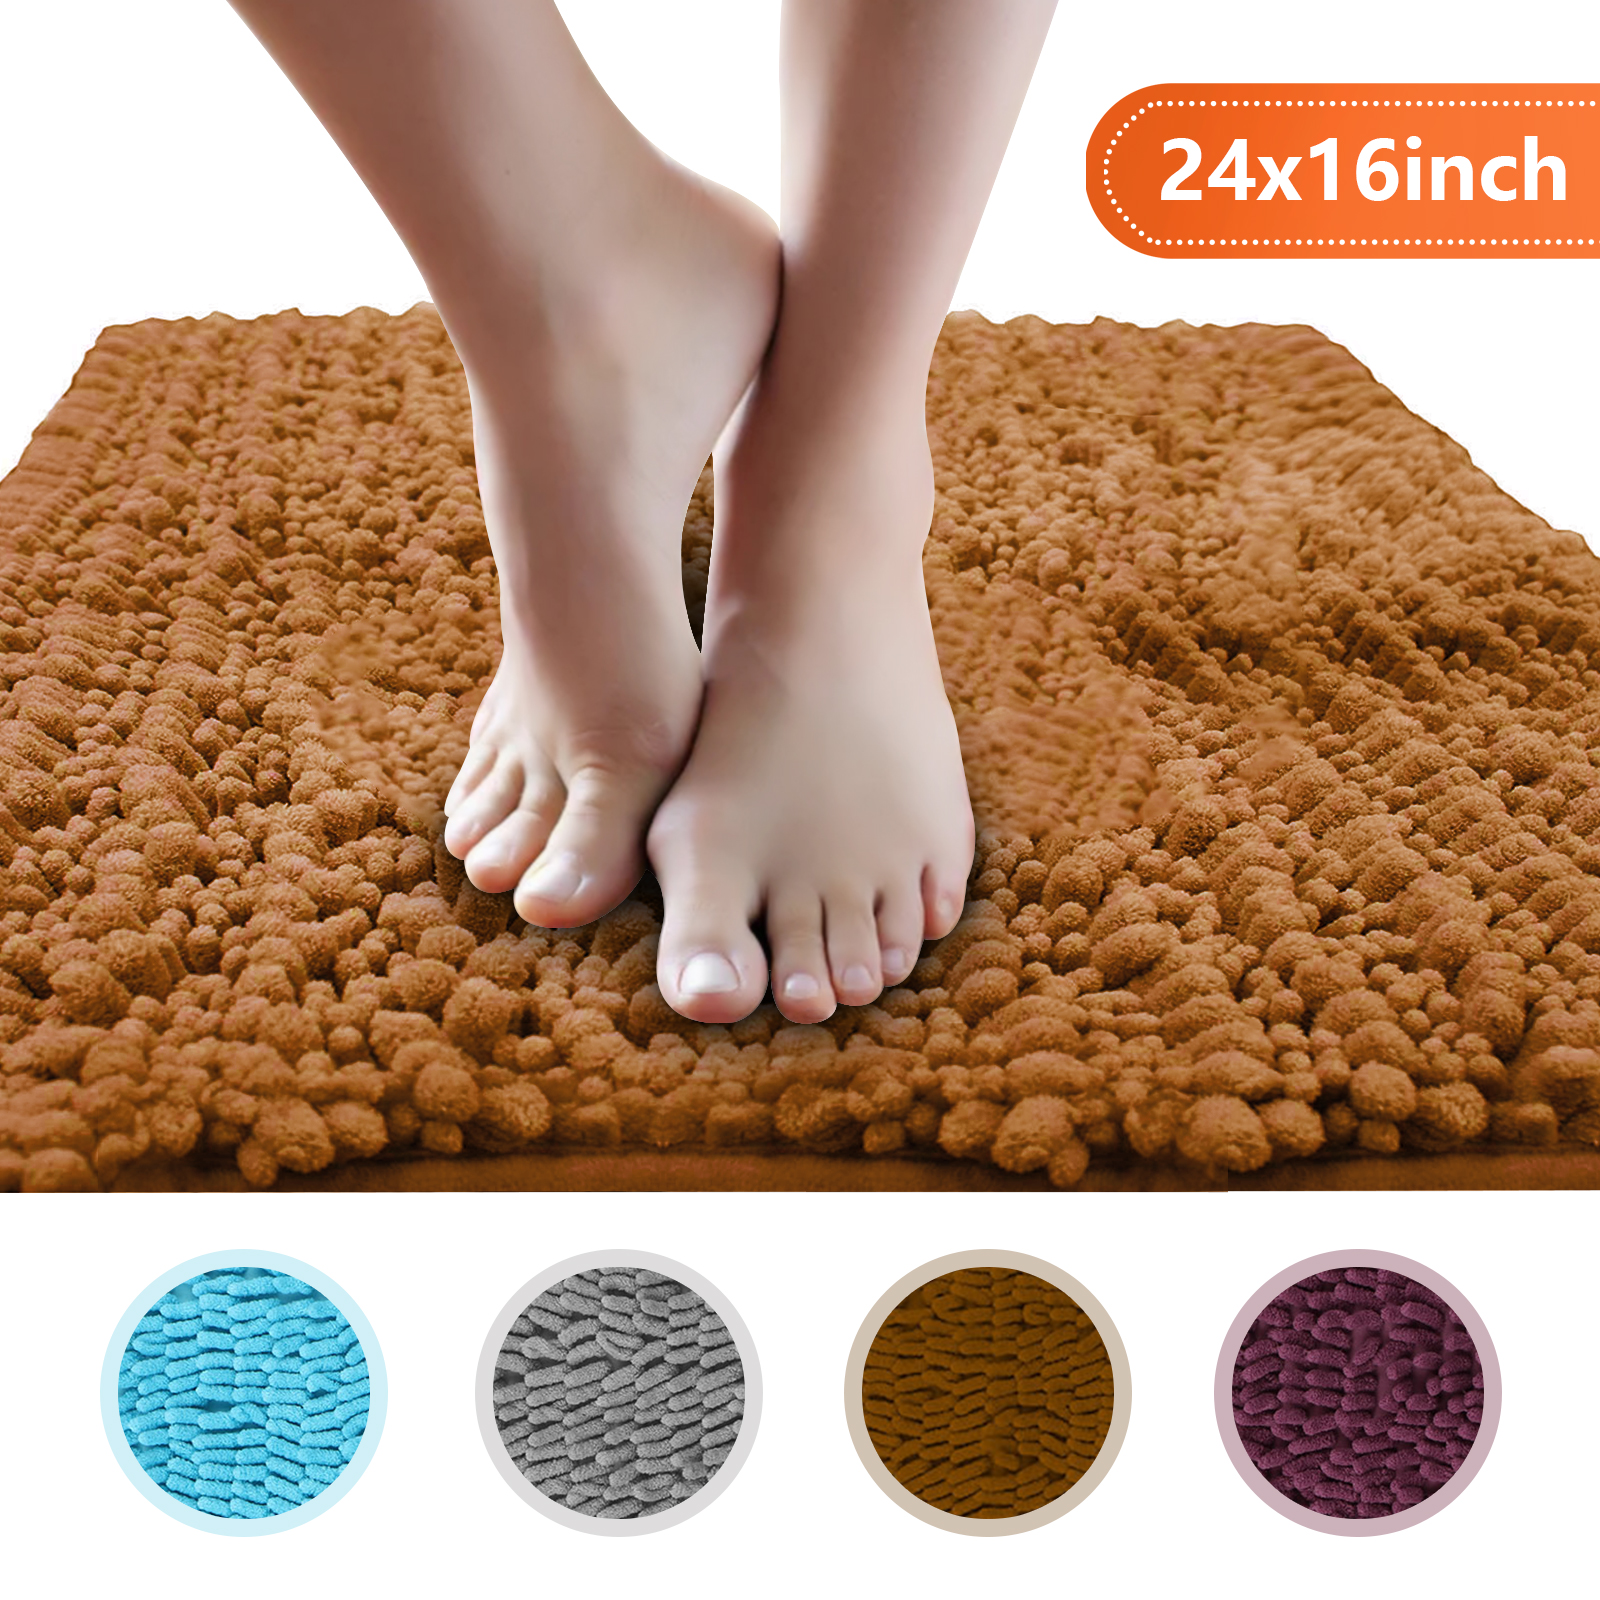 Bath Rugs Home Eanpet Chenille Bath Mat Non Slip Microfiber Floor Mat Baby Bath Mat For Kids Ultra Soft Washable Bathroom Dry Fast Water Absorbent Shag Shower Mat Area Rugs 20 X 32